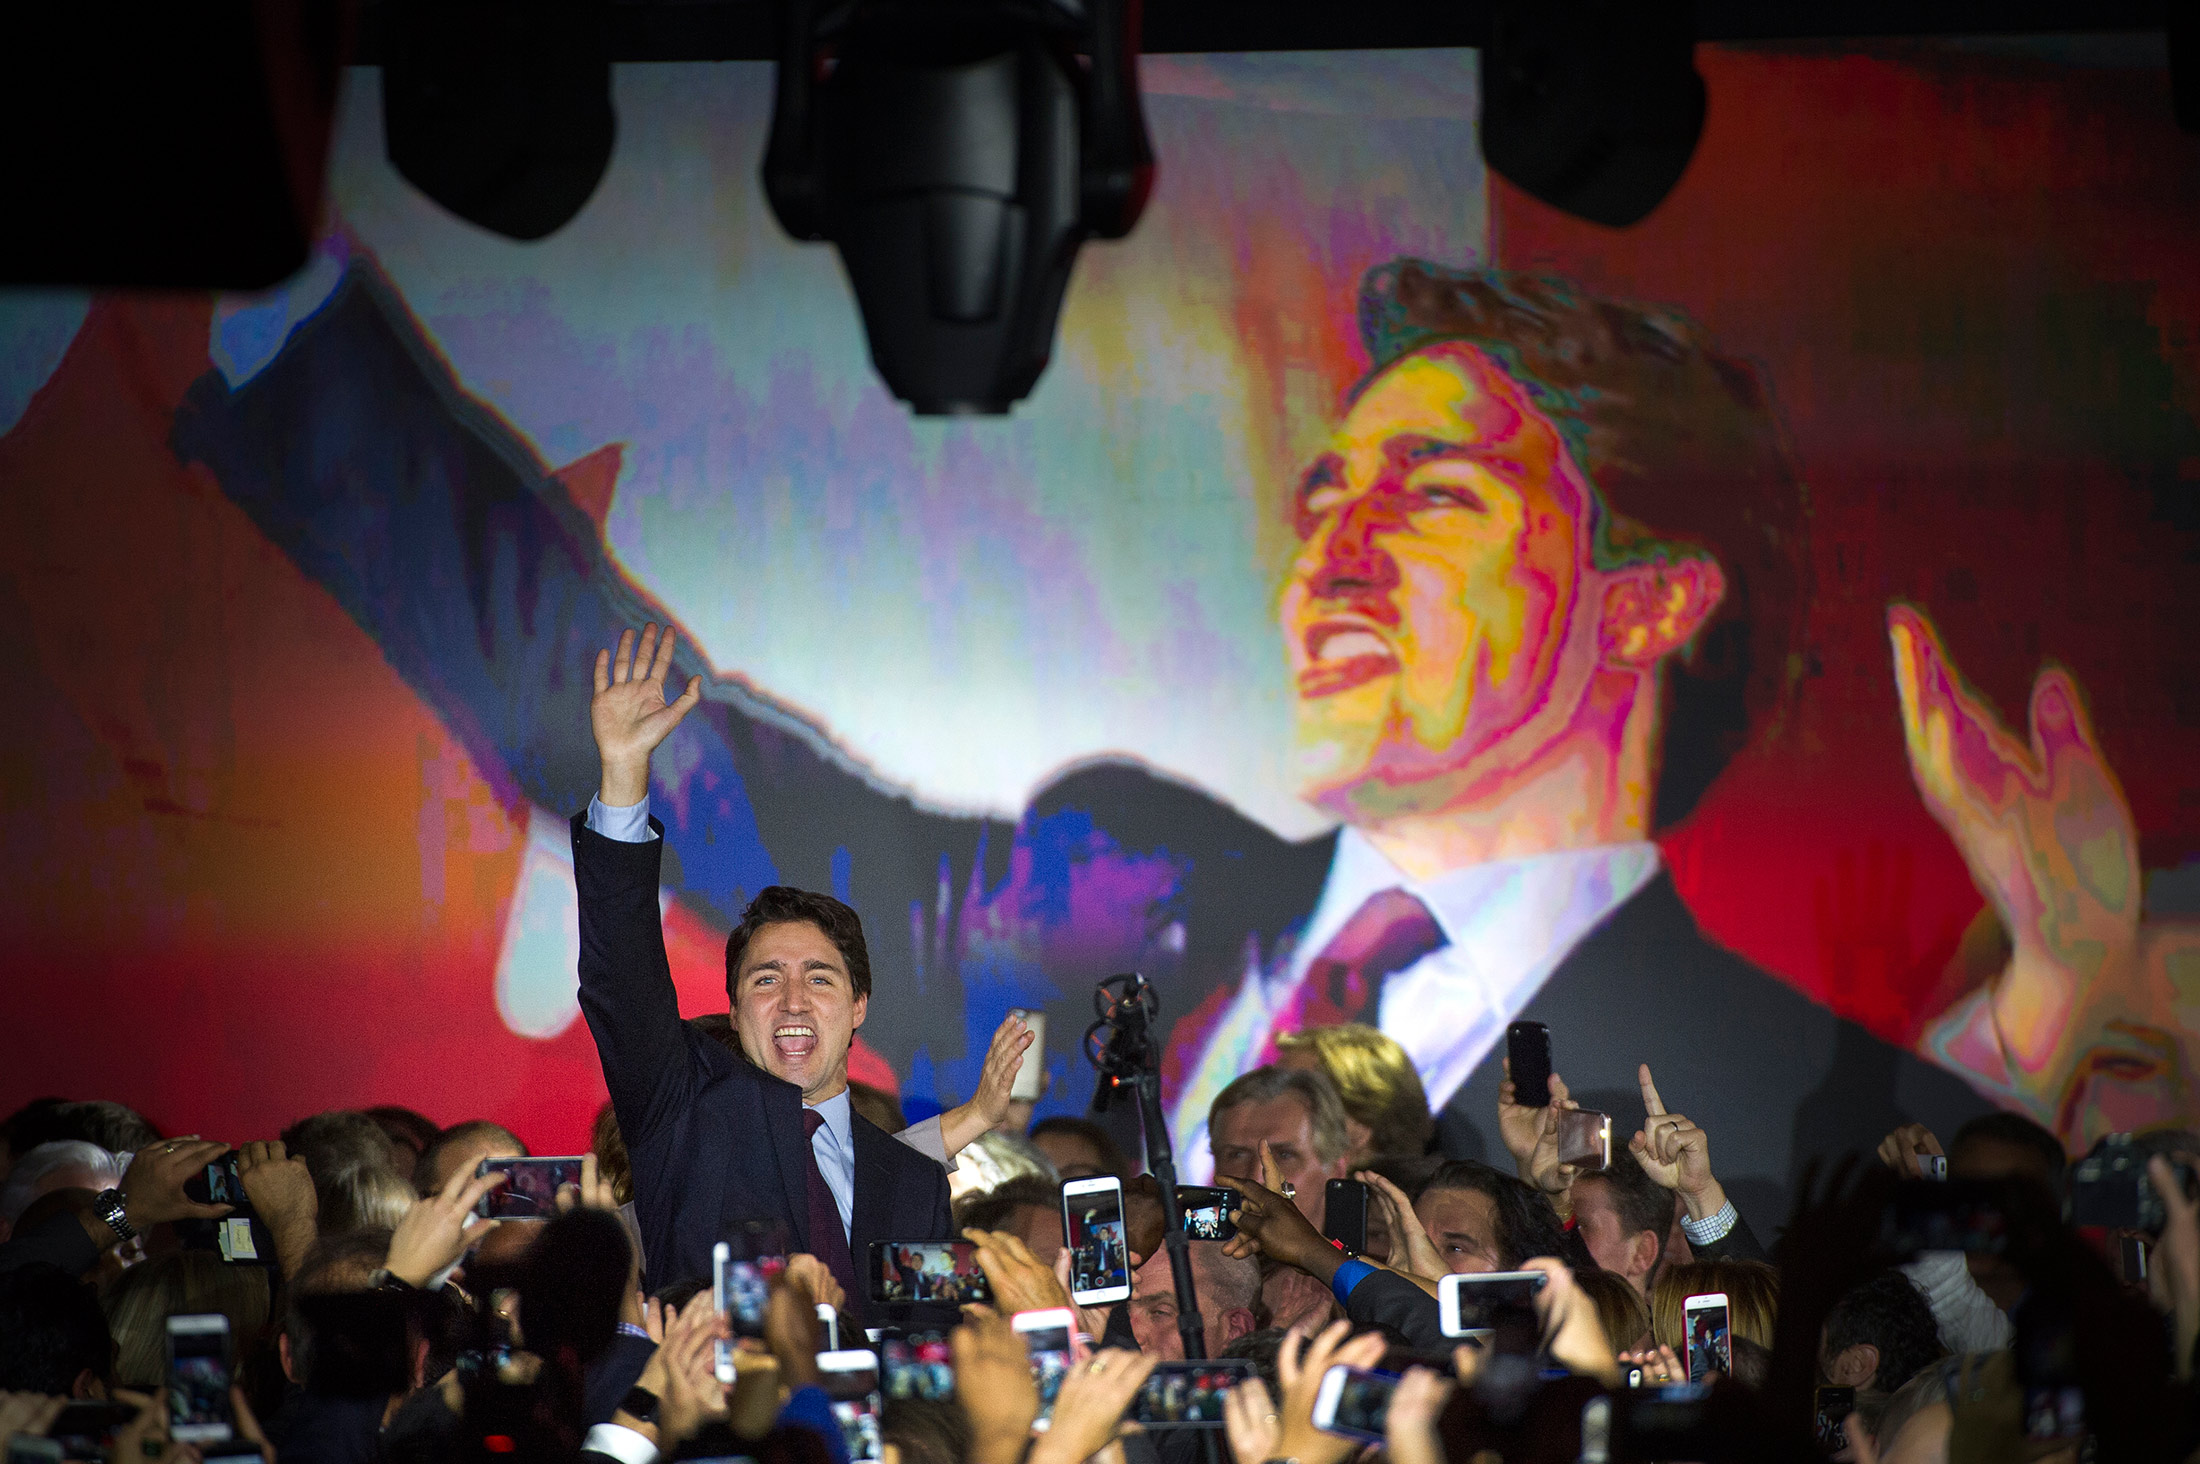 Who made the greatest impact on Canadian society in 2008?